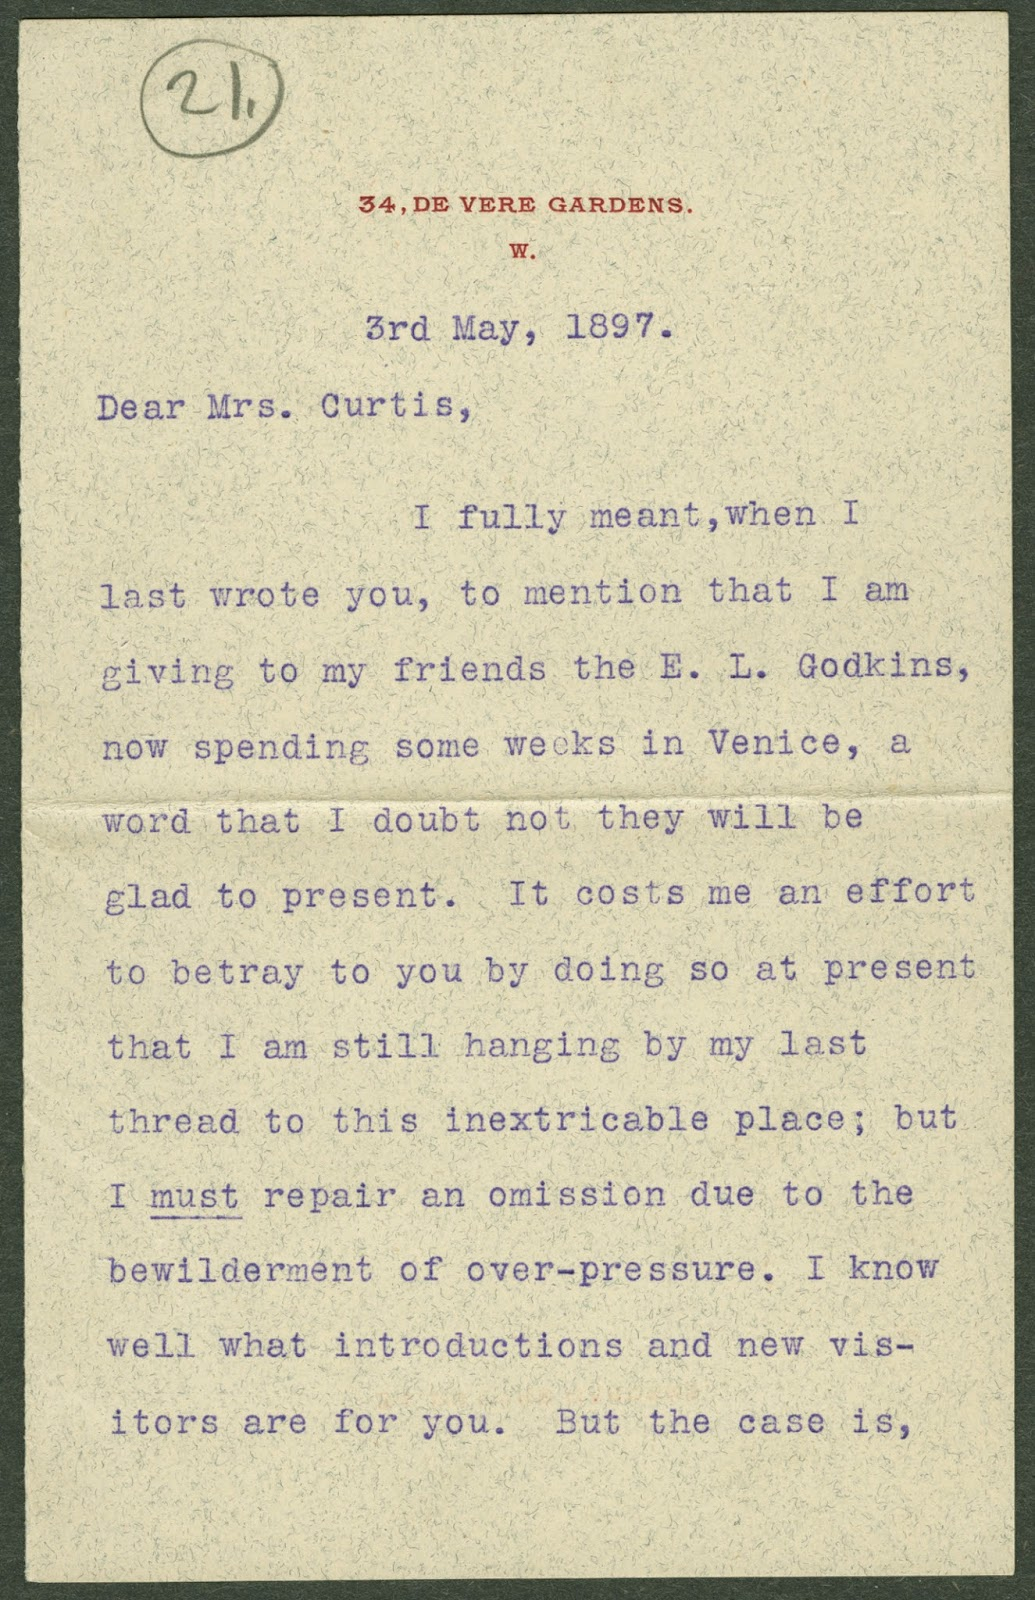 A typed letter from Henry James.